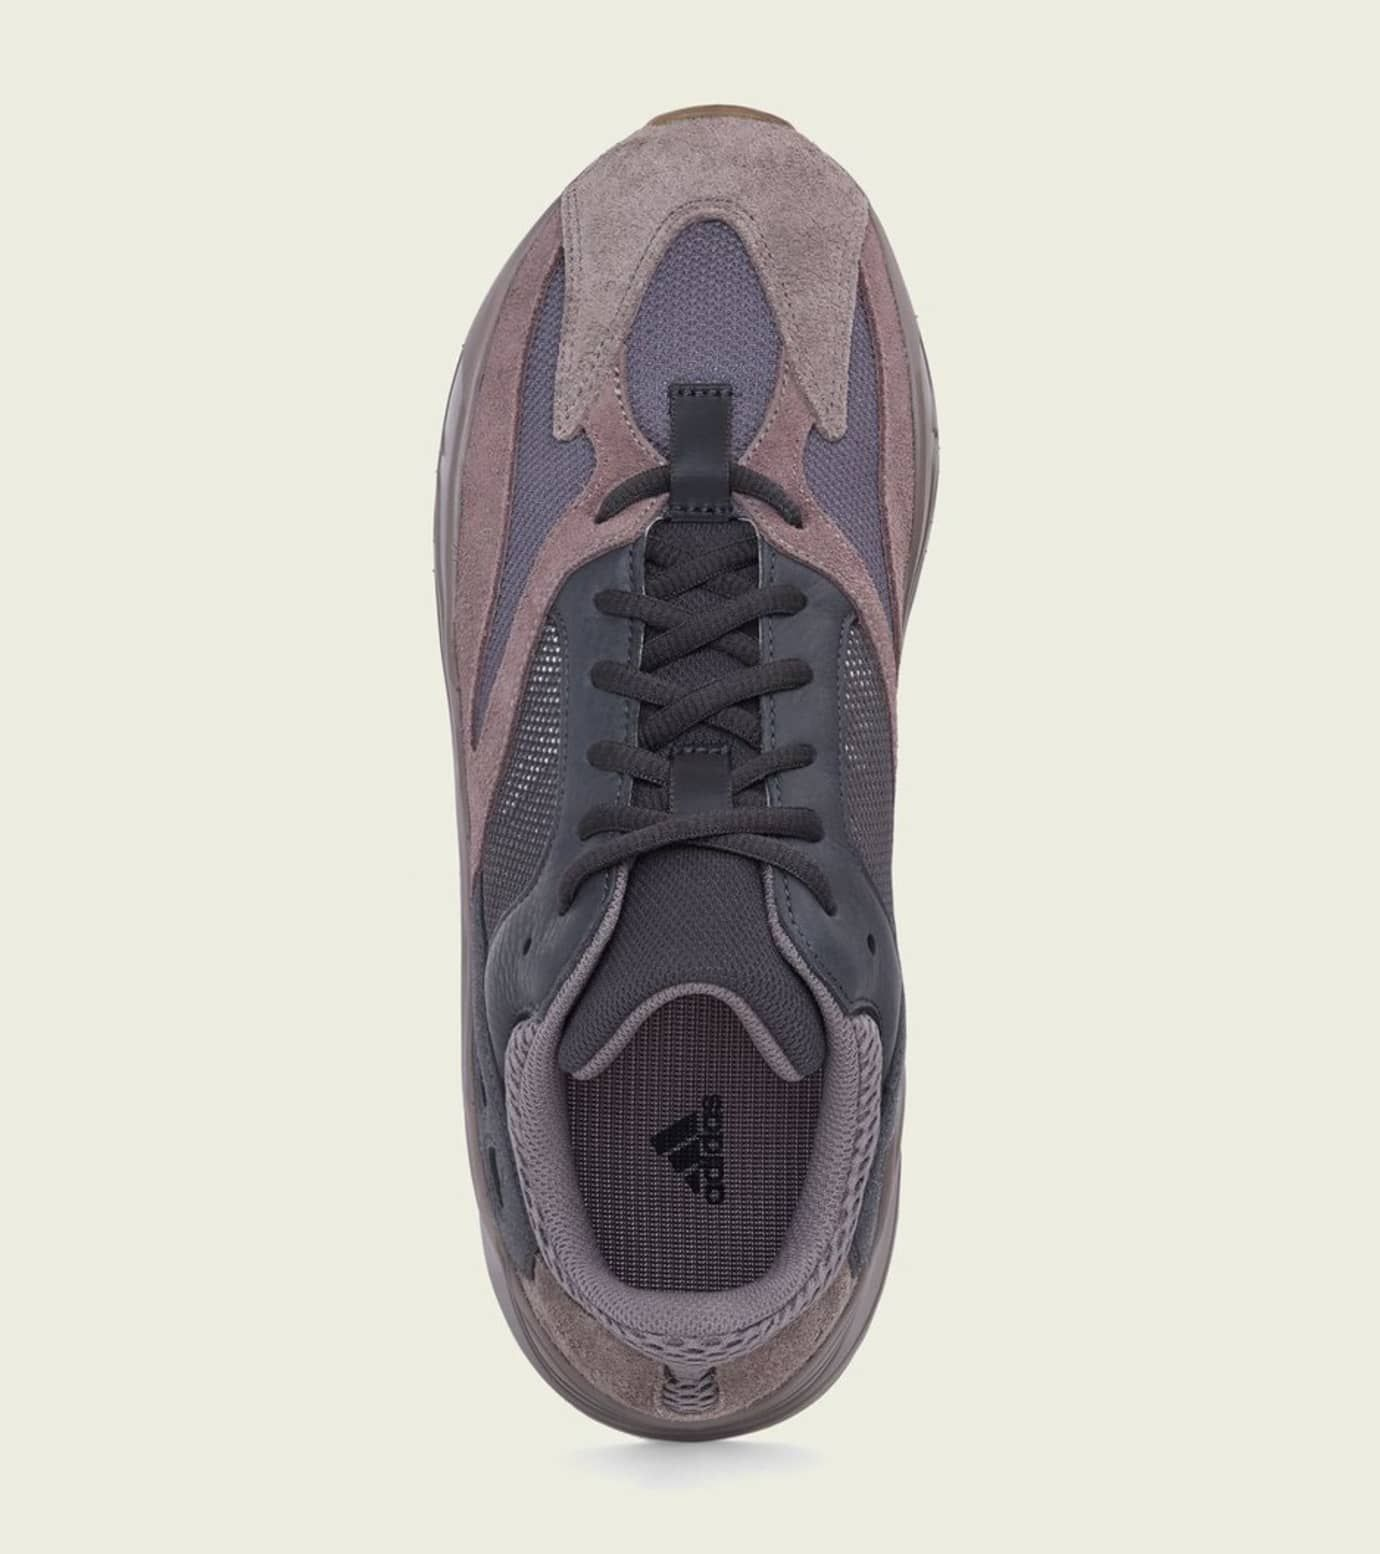 ce09f62a3 adidas-yeezy-boost-700-mauve-ee9614-top